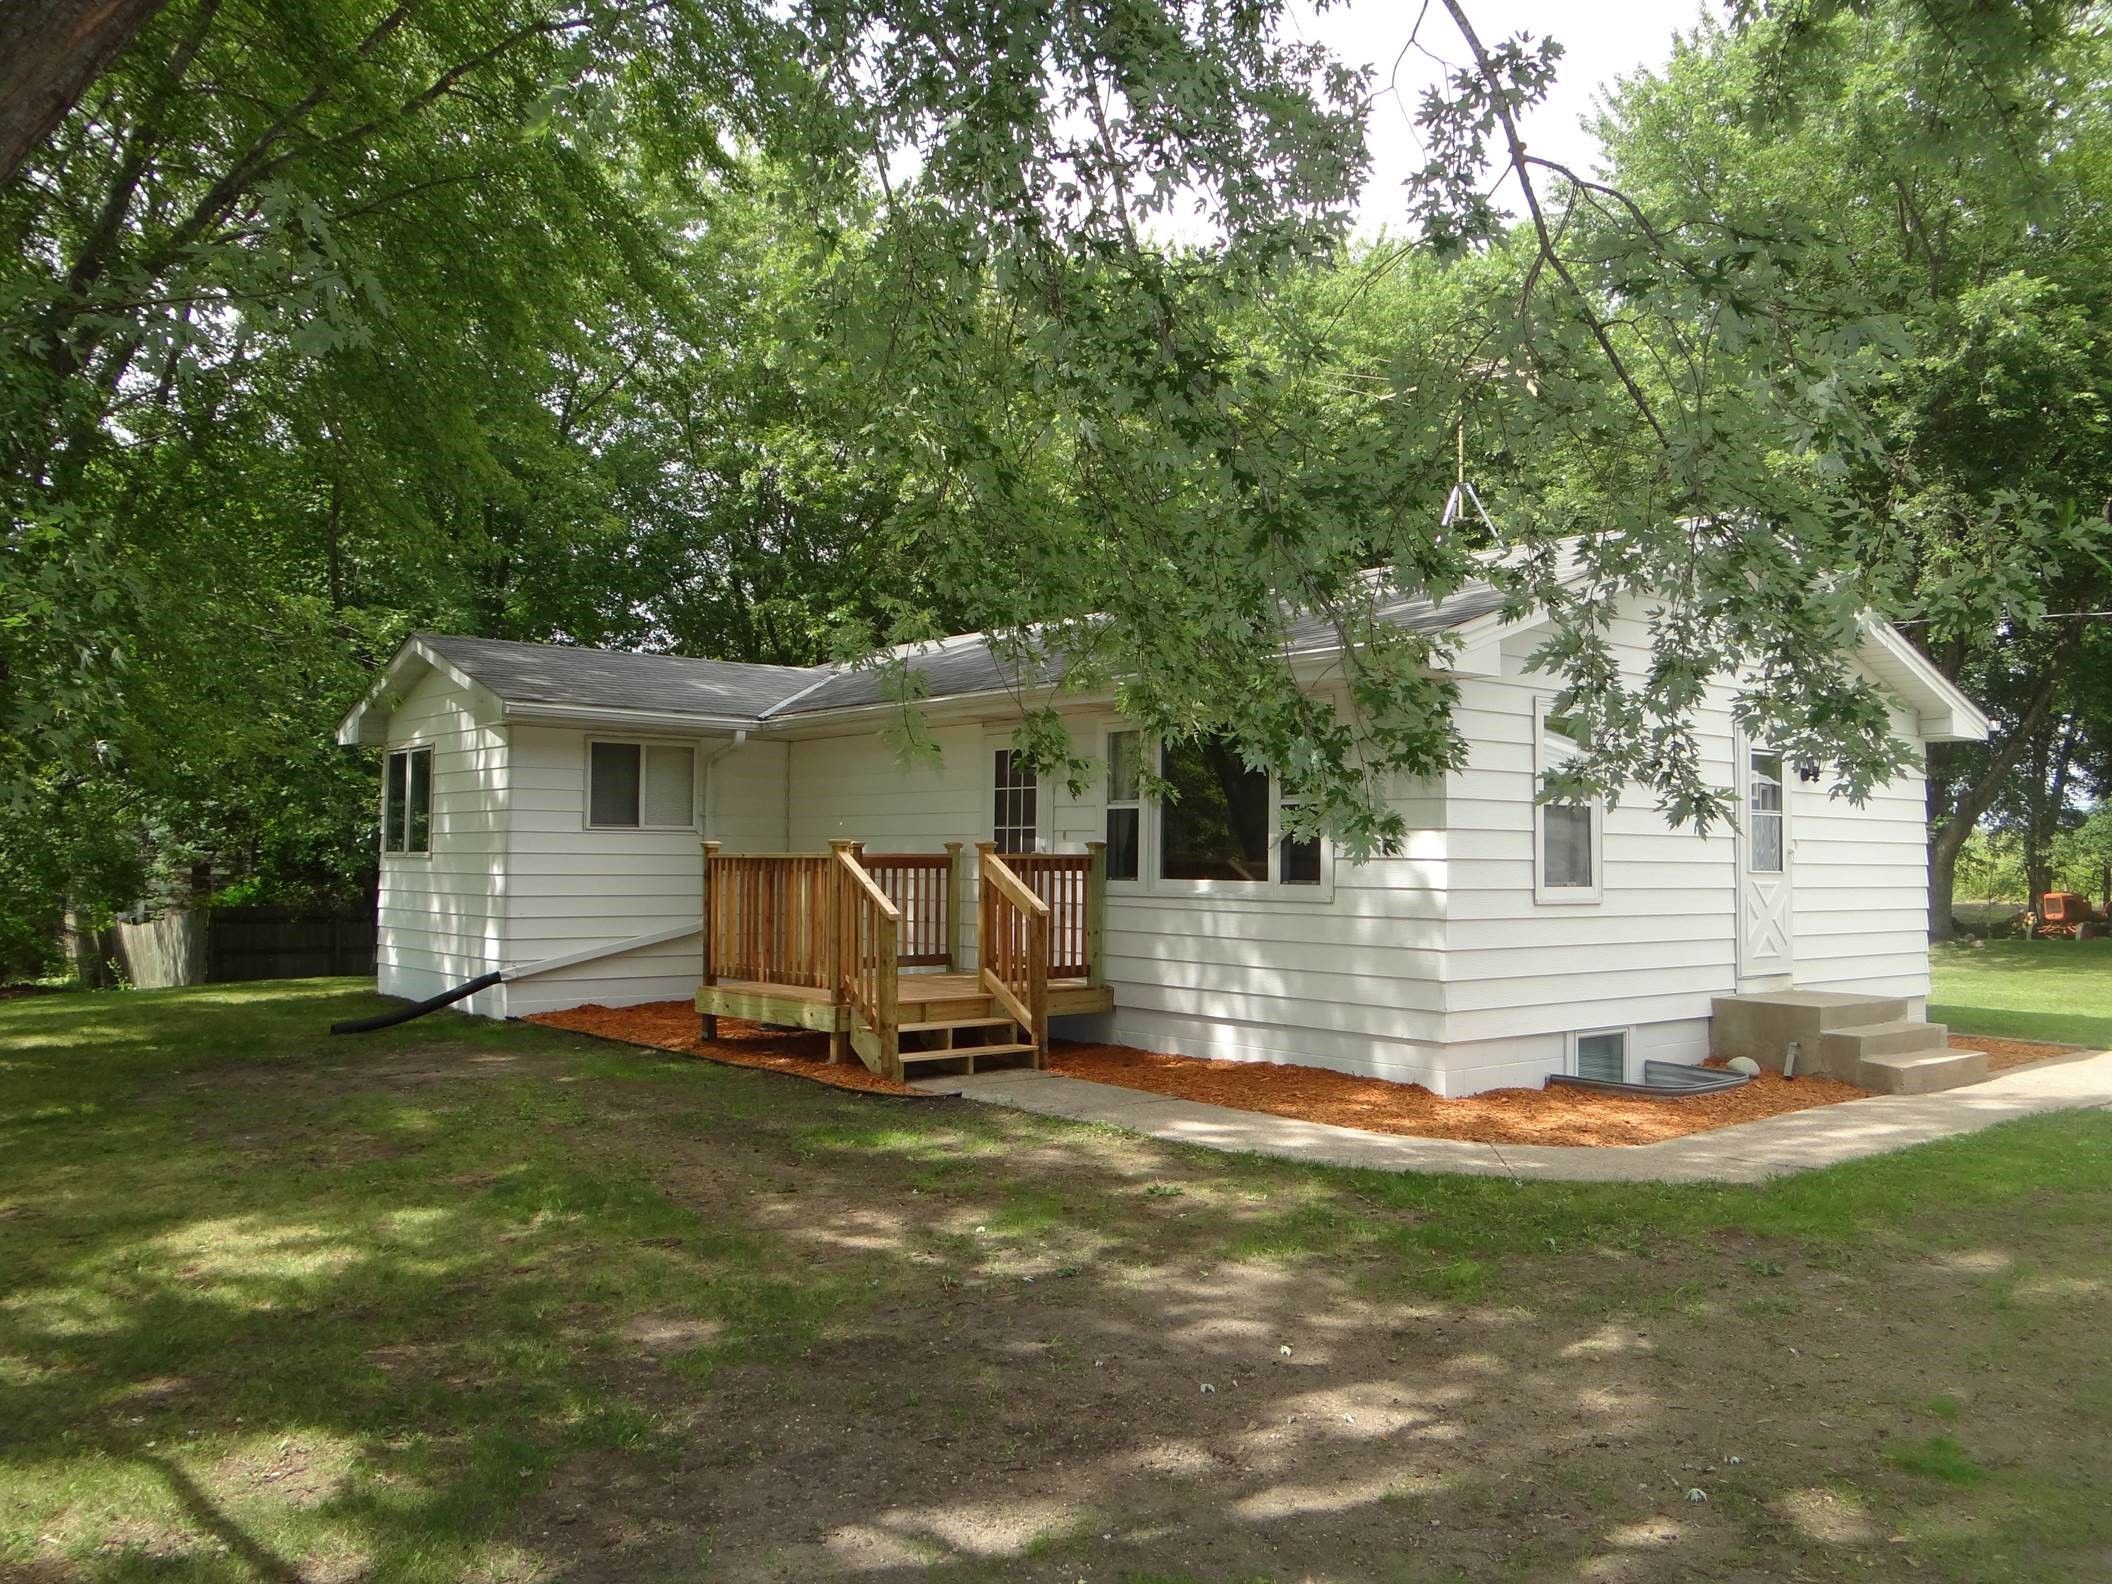 New listing in buffalo mn on 1 acre buffalo homes for sale for Modern homes for sale mn